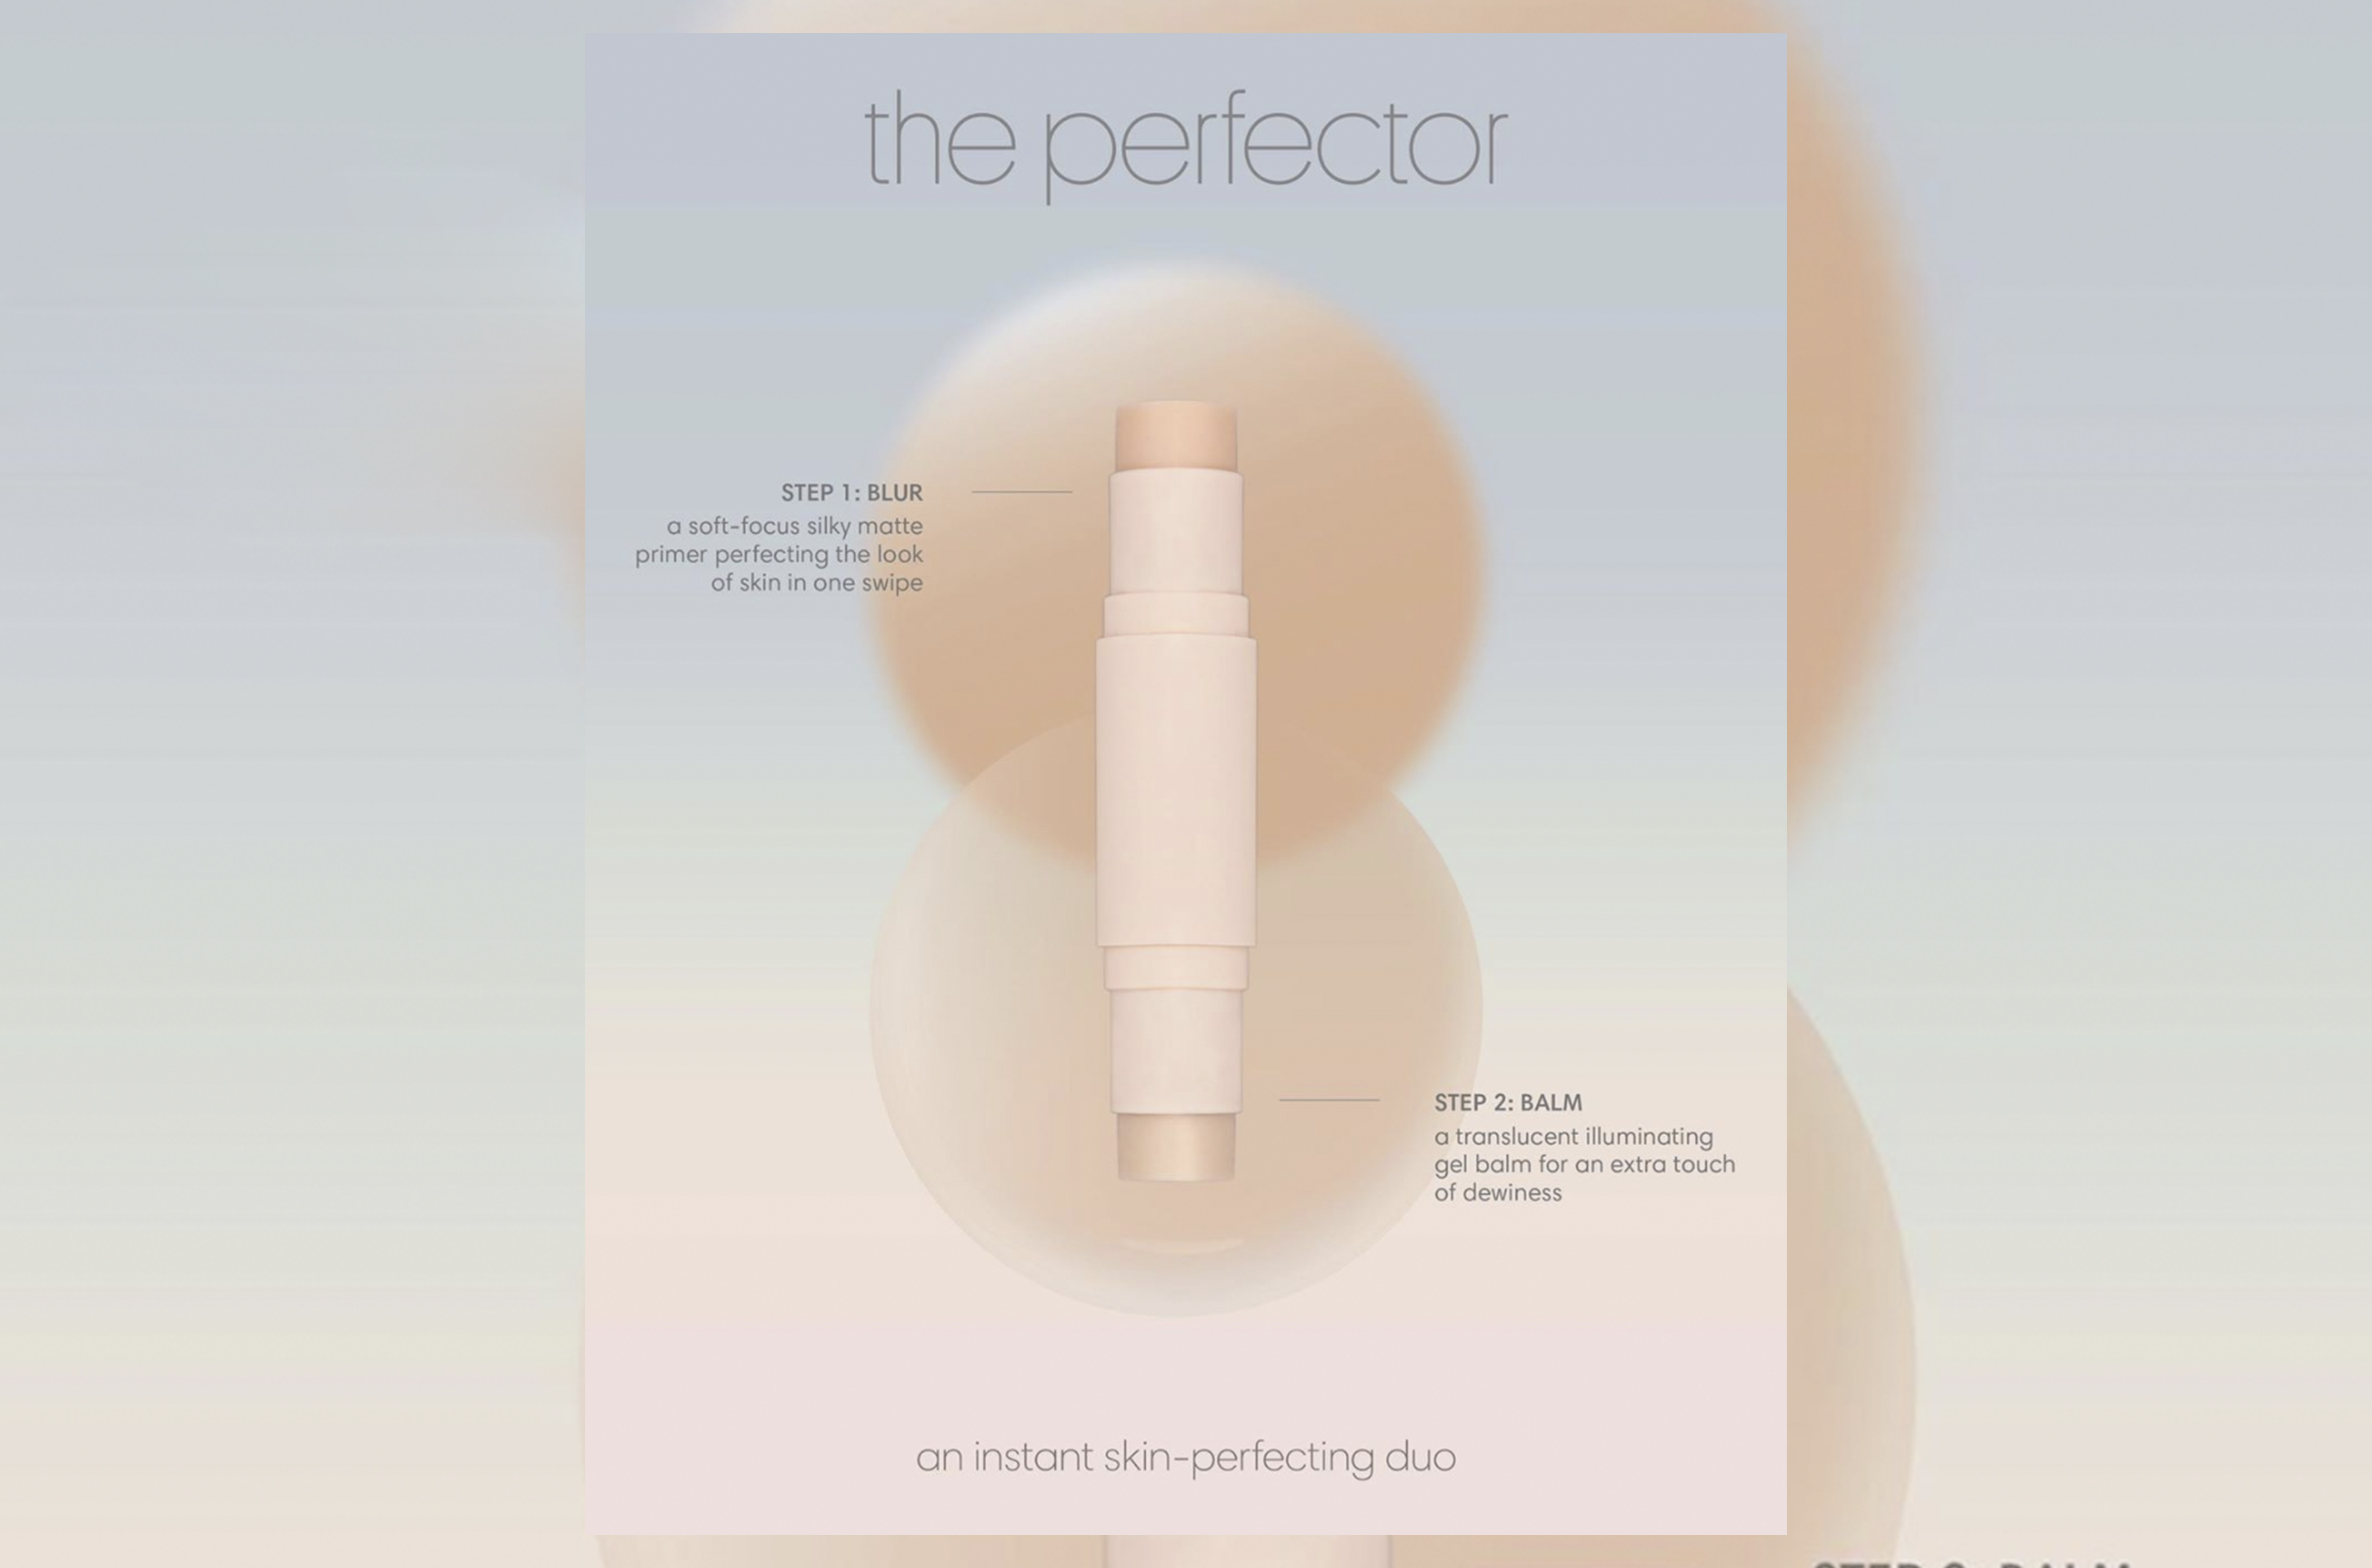 SUNNIES FACE'S NEWEST MAKEUP STICK PROMISES TO ACHIEVE SKIN THAT LOOKS LIKE SKIN